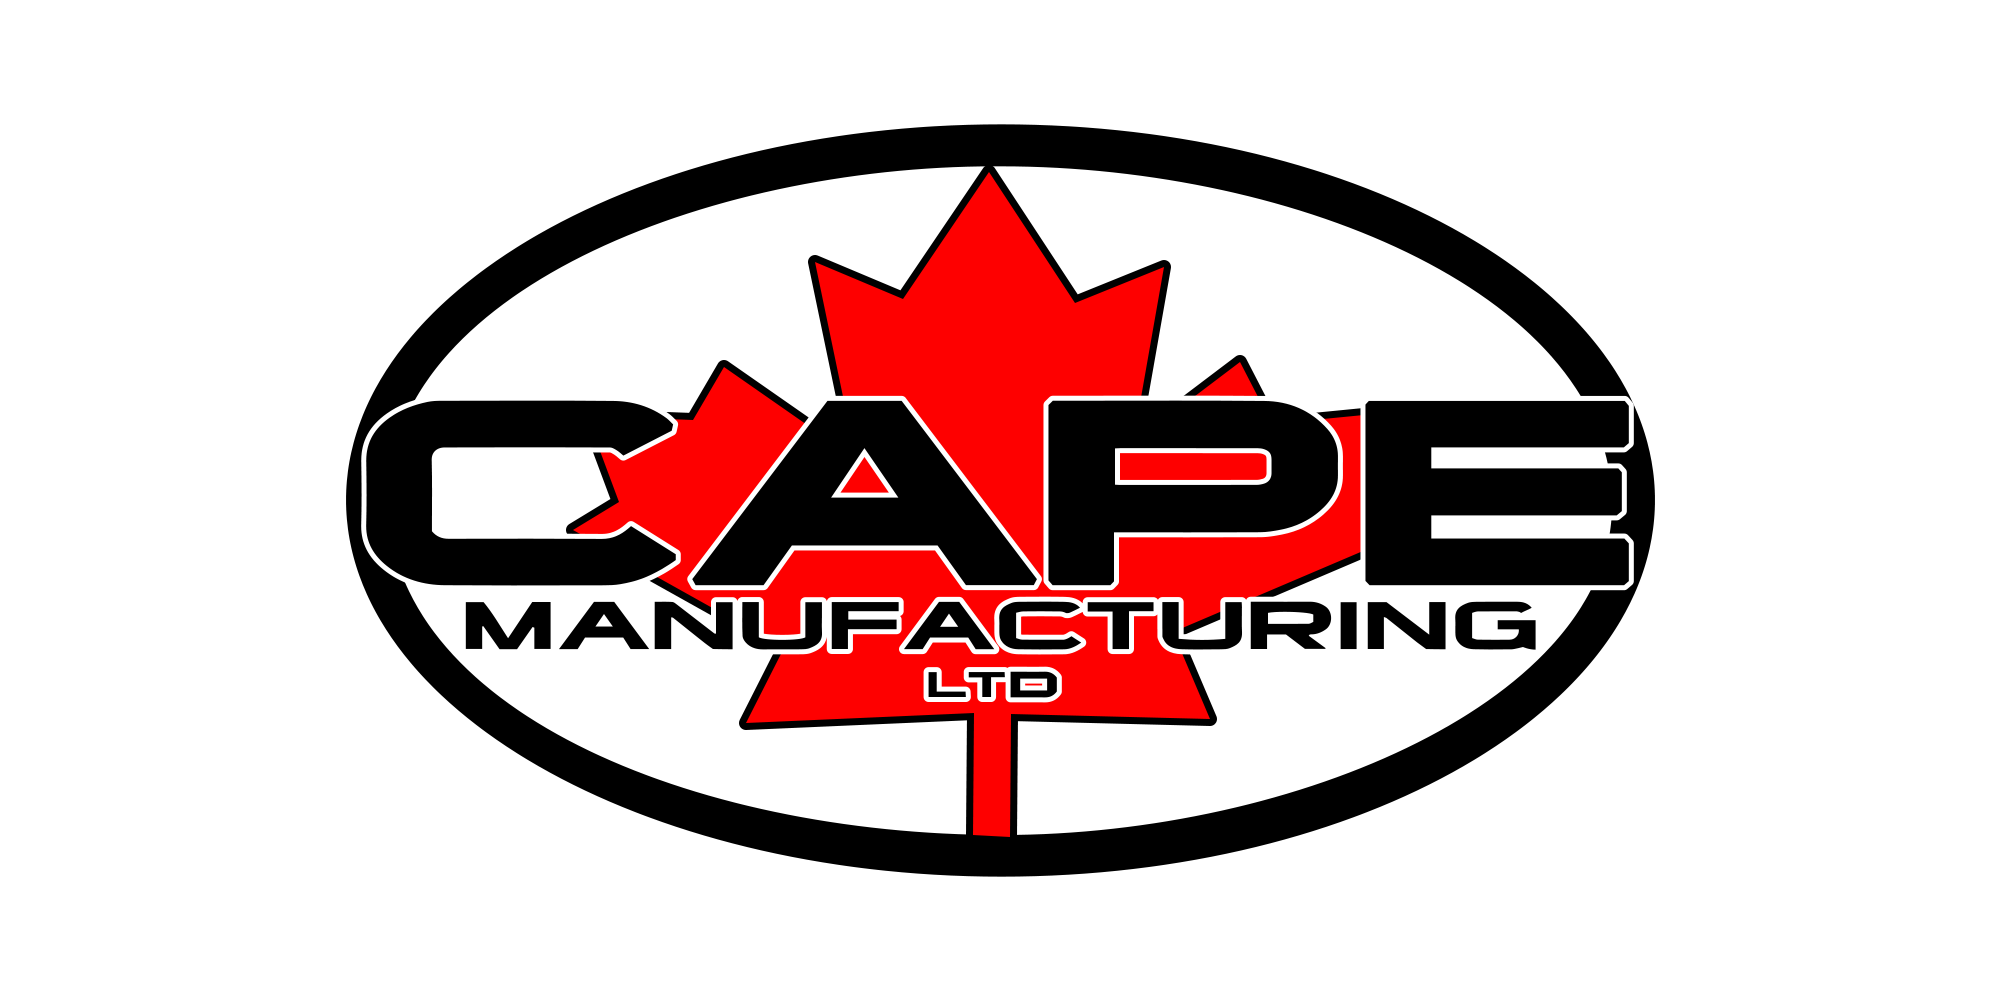 CAPE Manufacturing LTD PNG - White Background